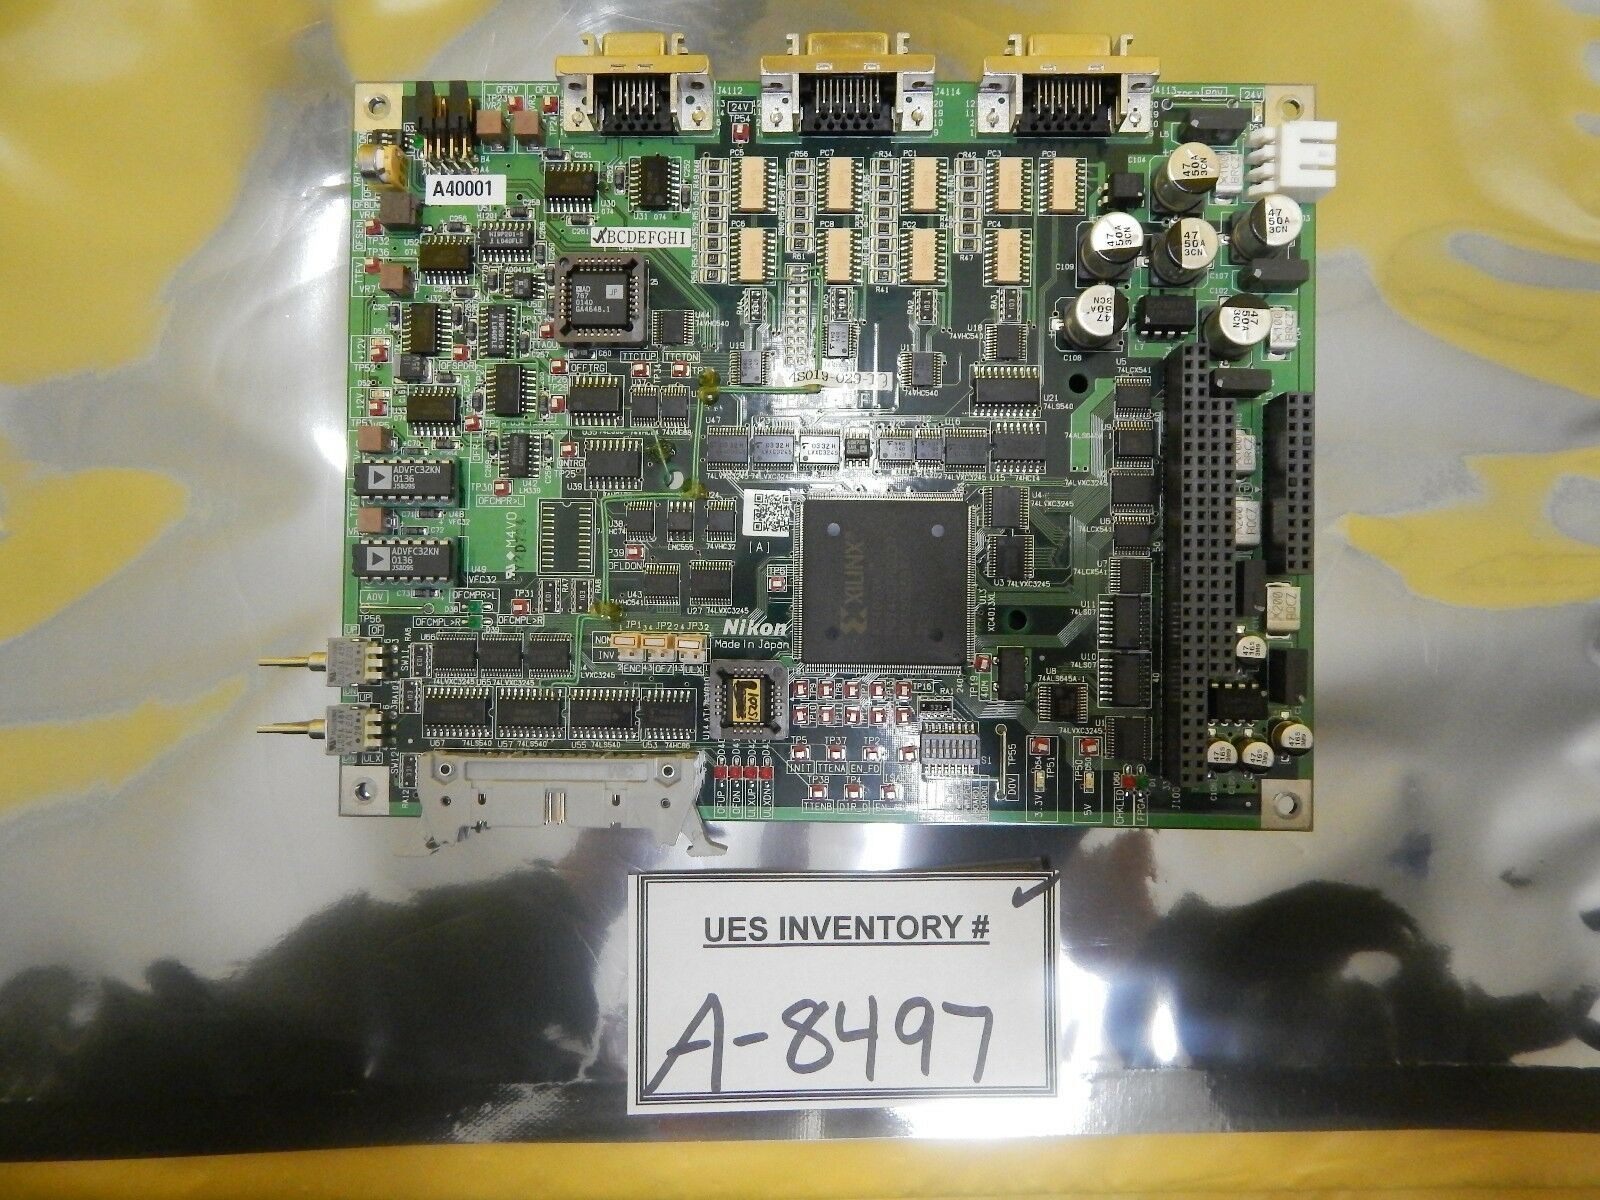 Nikon 4S019-029-1 Prealigner 1 Interface Board PRE1_I/F PCB Used Working